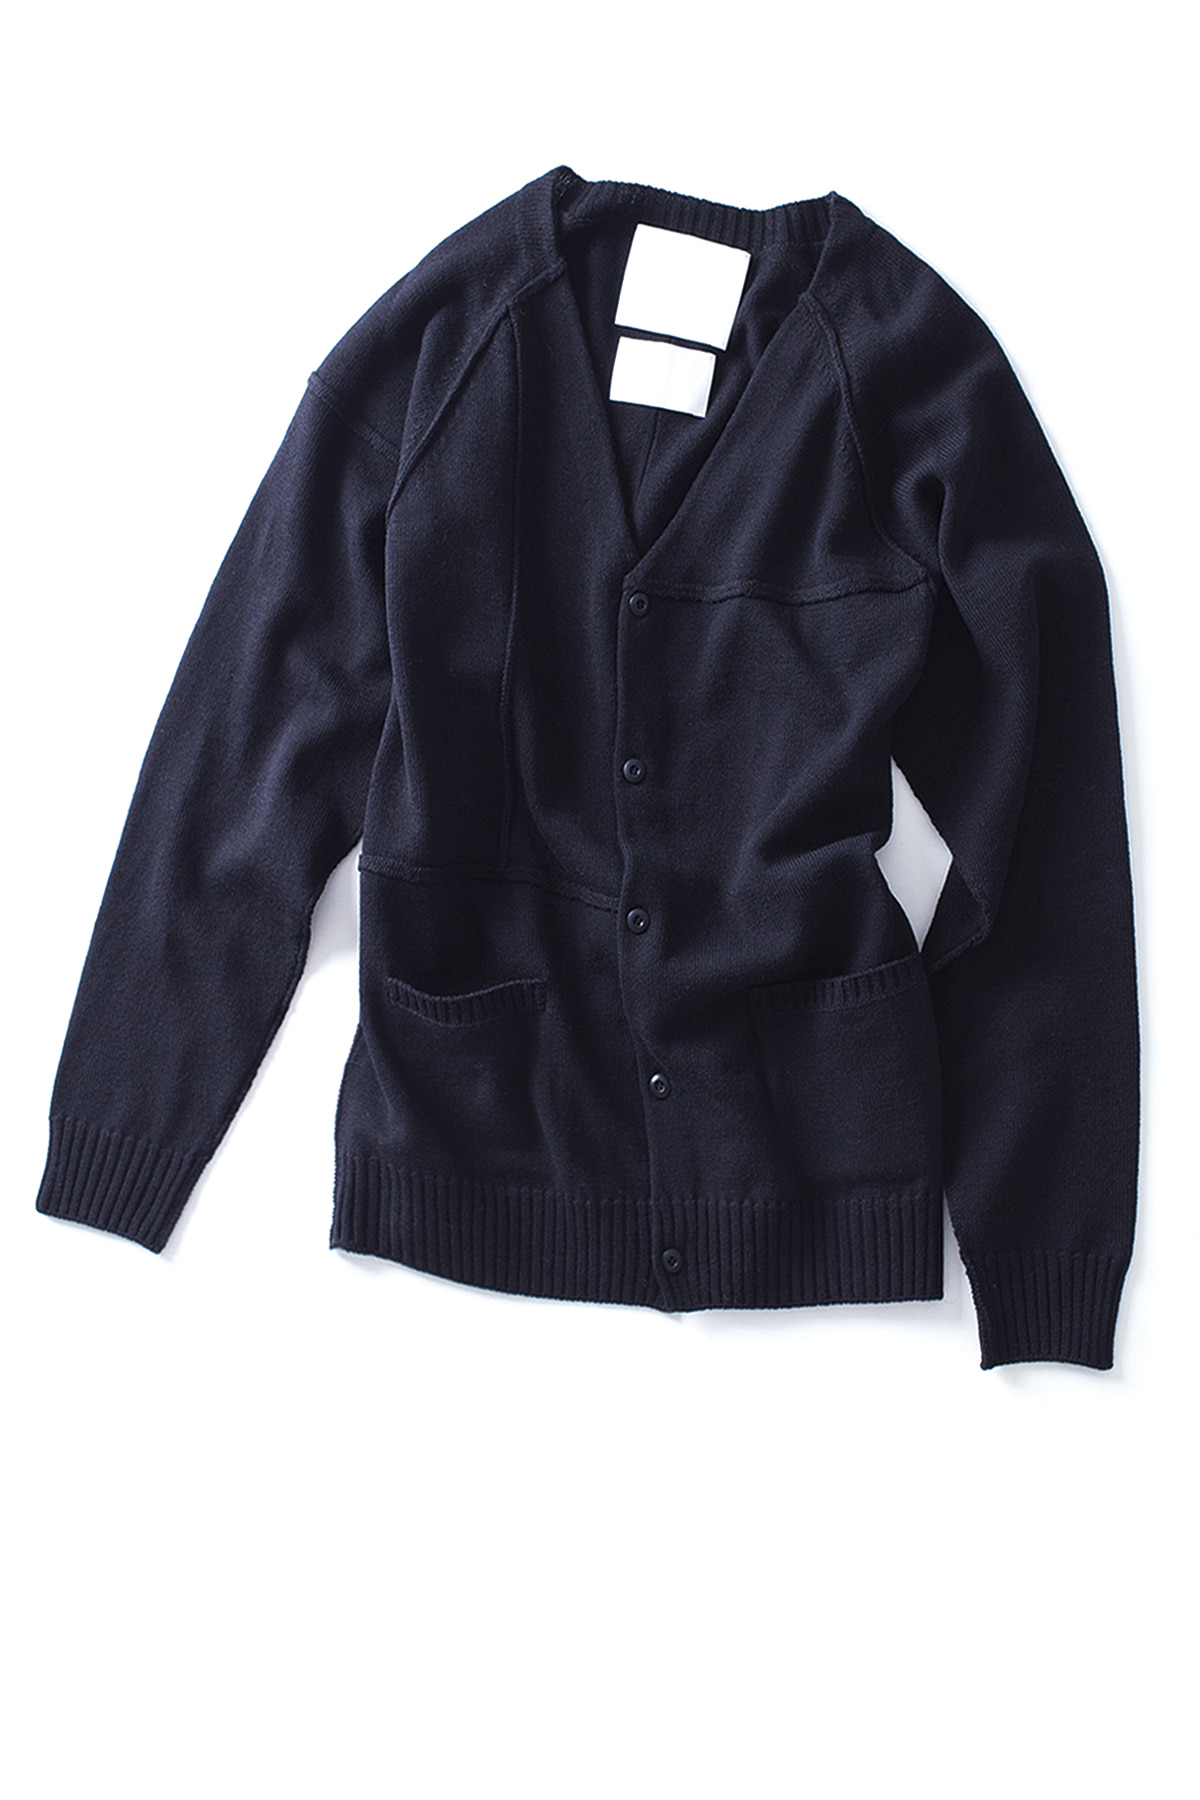 WHITE MOUNTAINEERING : Contrast Knit Cardigan (Black)